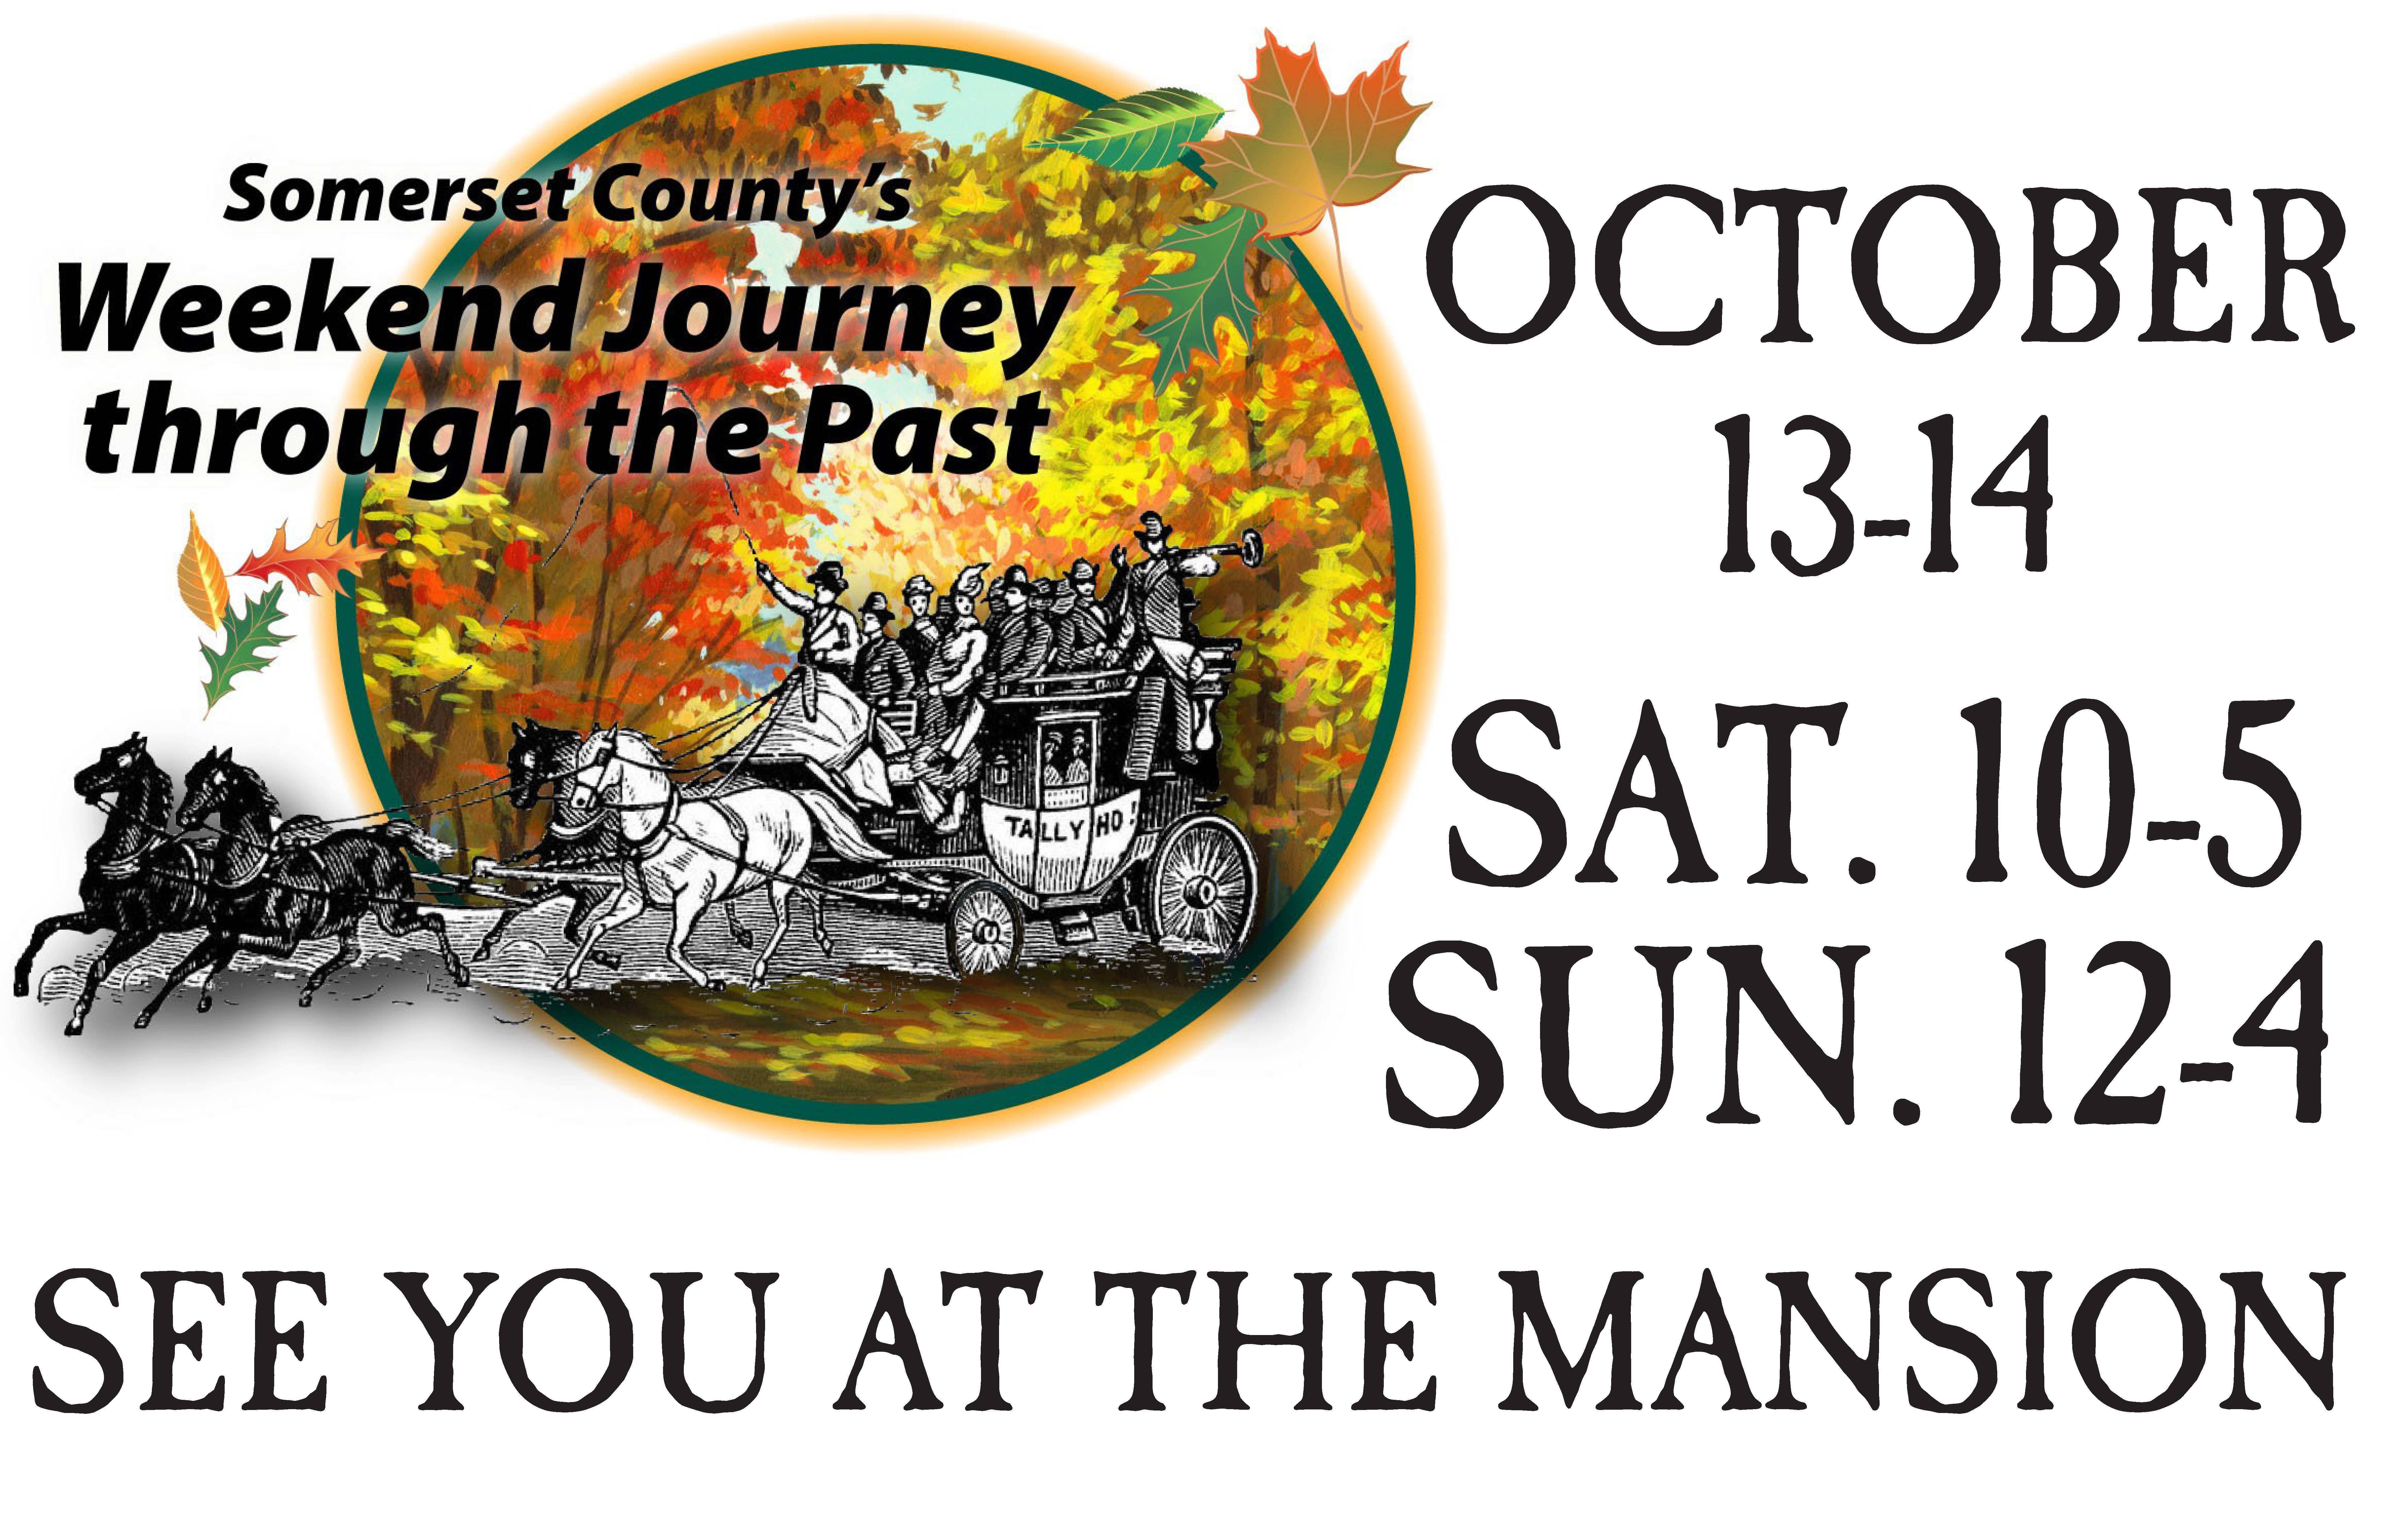 Vermeule to Participate in Weekend Journey Event Oct 13-14